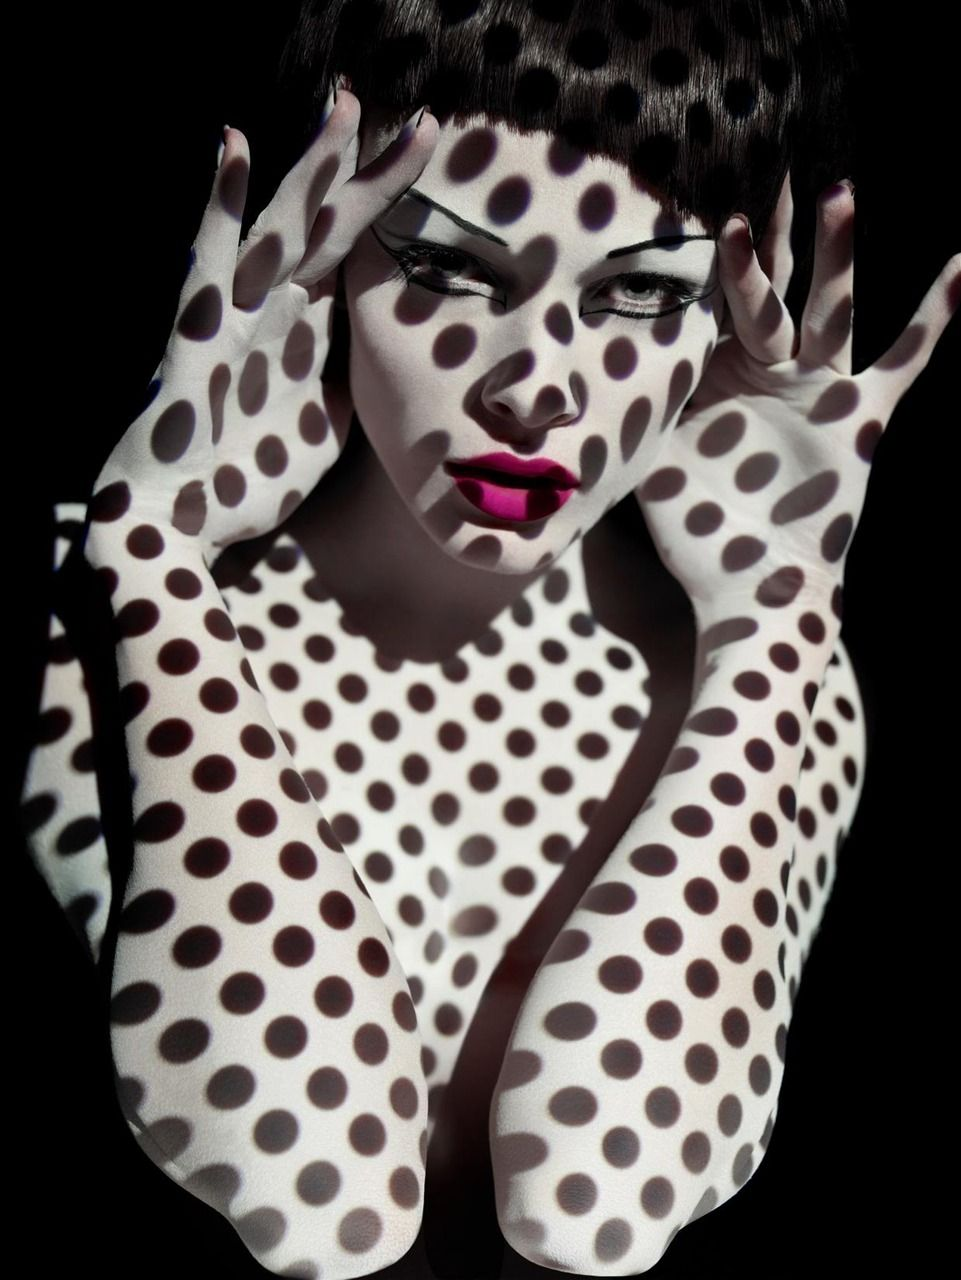 Painting with light: Solve Sundsbo (Dots)